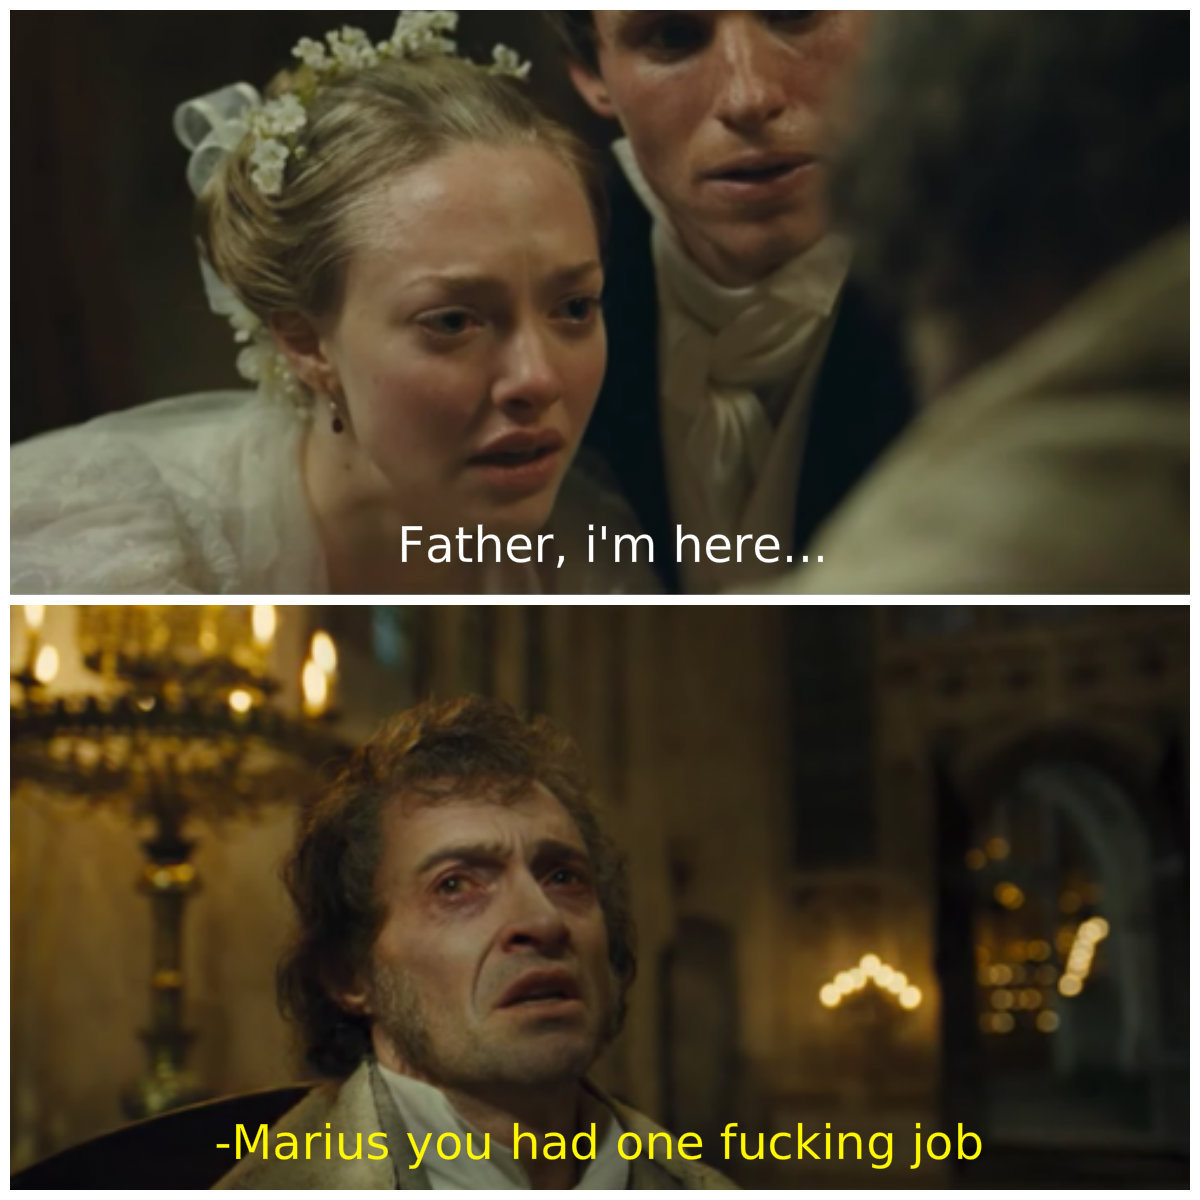 valjean and cosette relationship memes